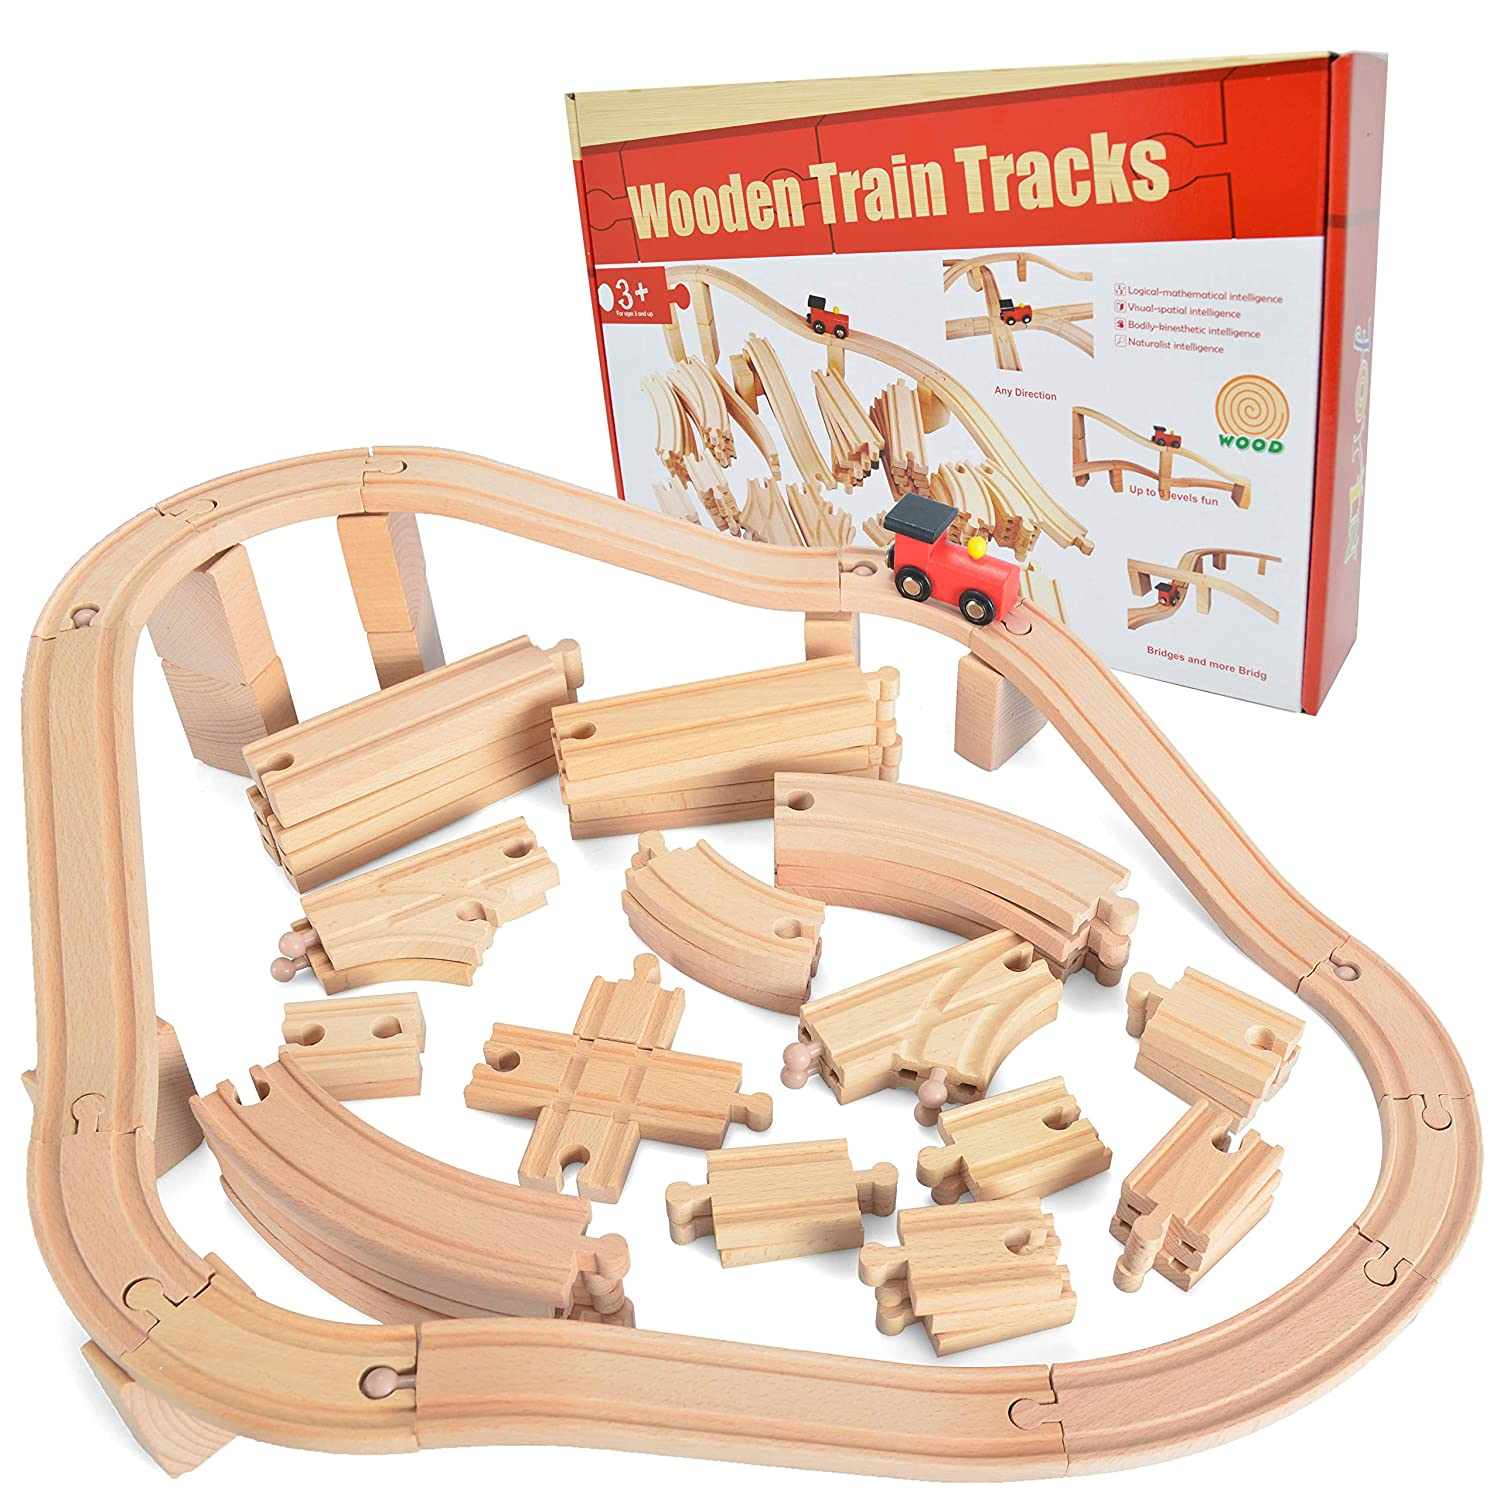 62 Pieces Wooden Train Track Expansion Set + 1 Bonus Toy Train -- NEW Version Compatible with All Major Brands Including Thomas Battery Operated Motorized Ones by Joyin Toy Joyin Inc